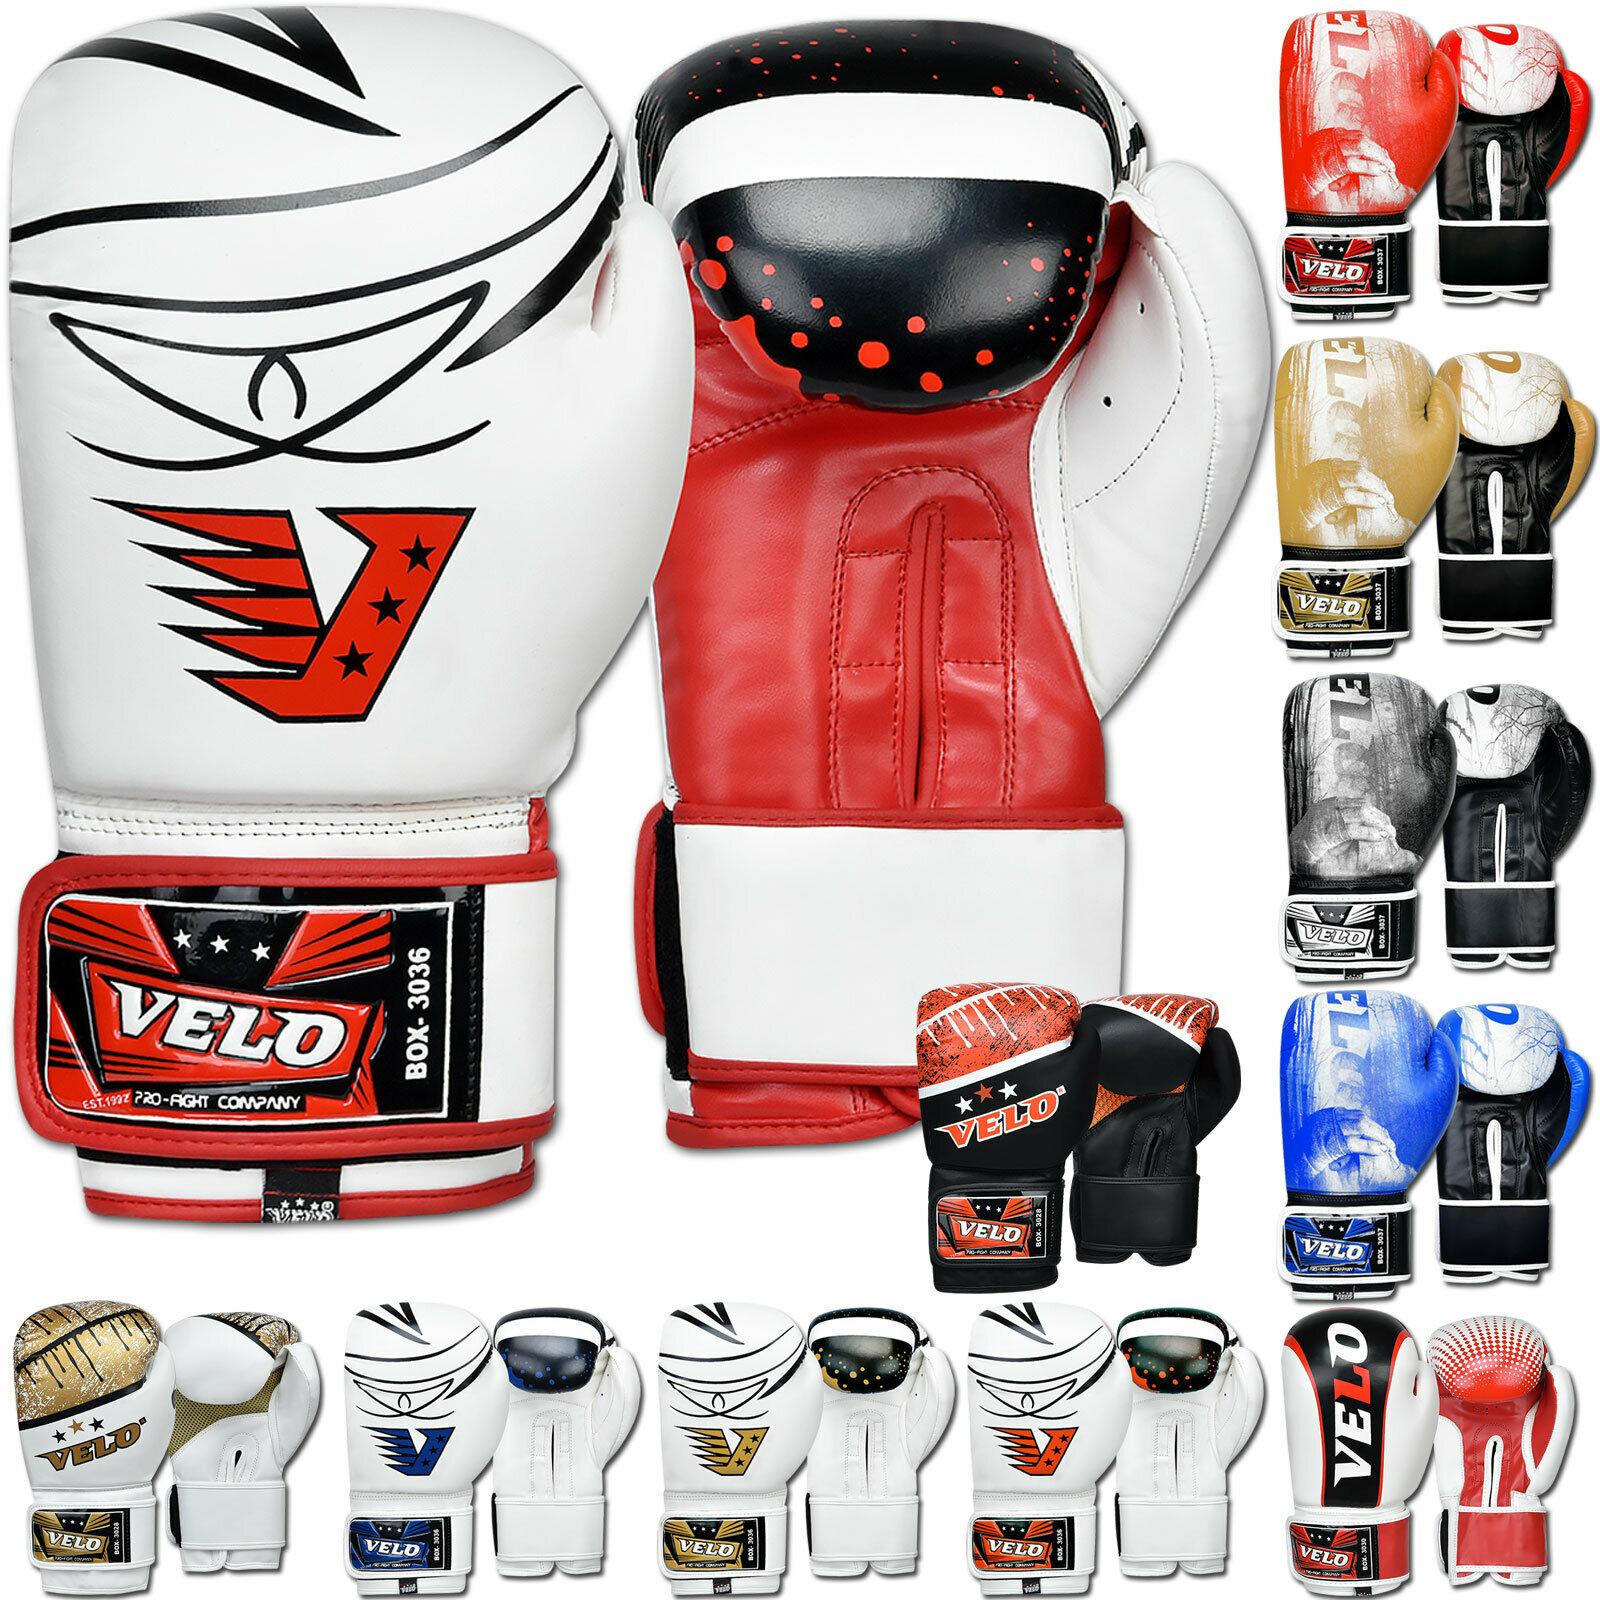 VELO Boxing Gloves Red-White New Boxing Gloves